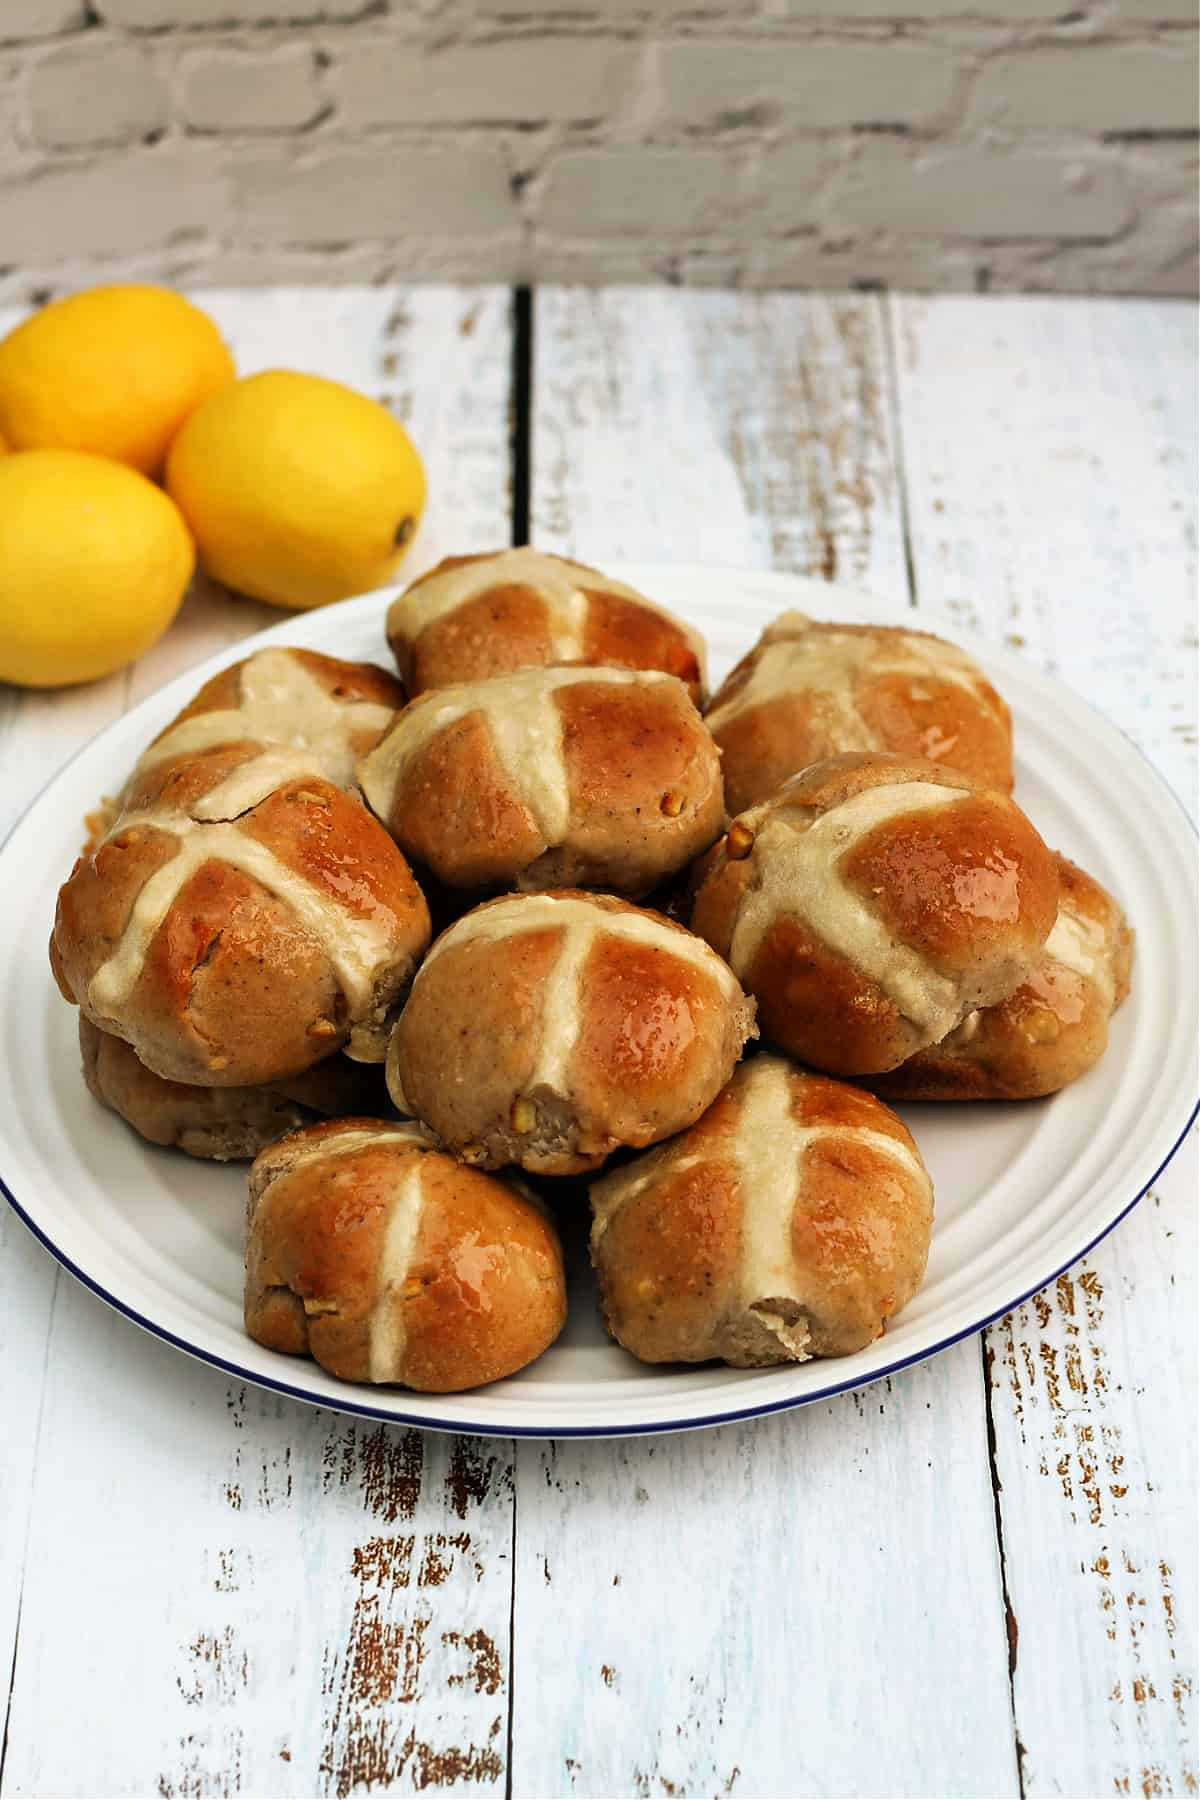 A white plate of hot cross buns, with lemons in the background.